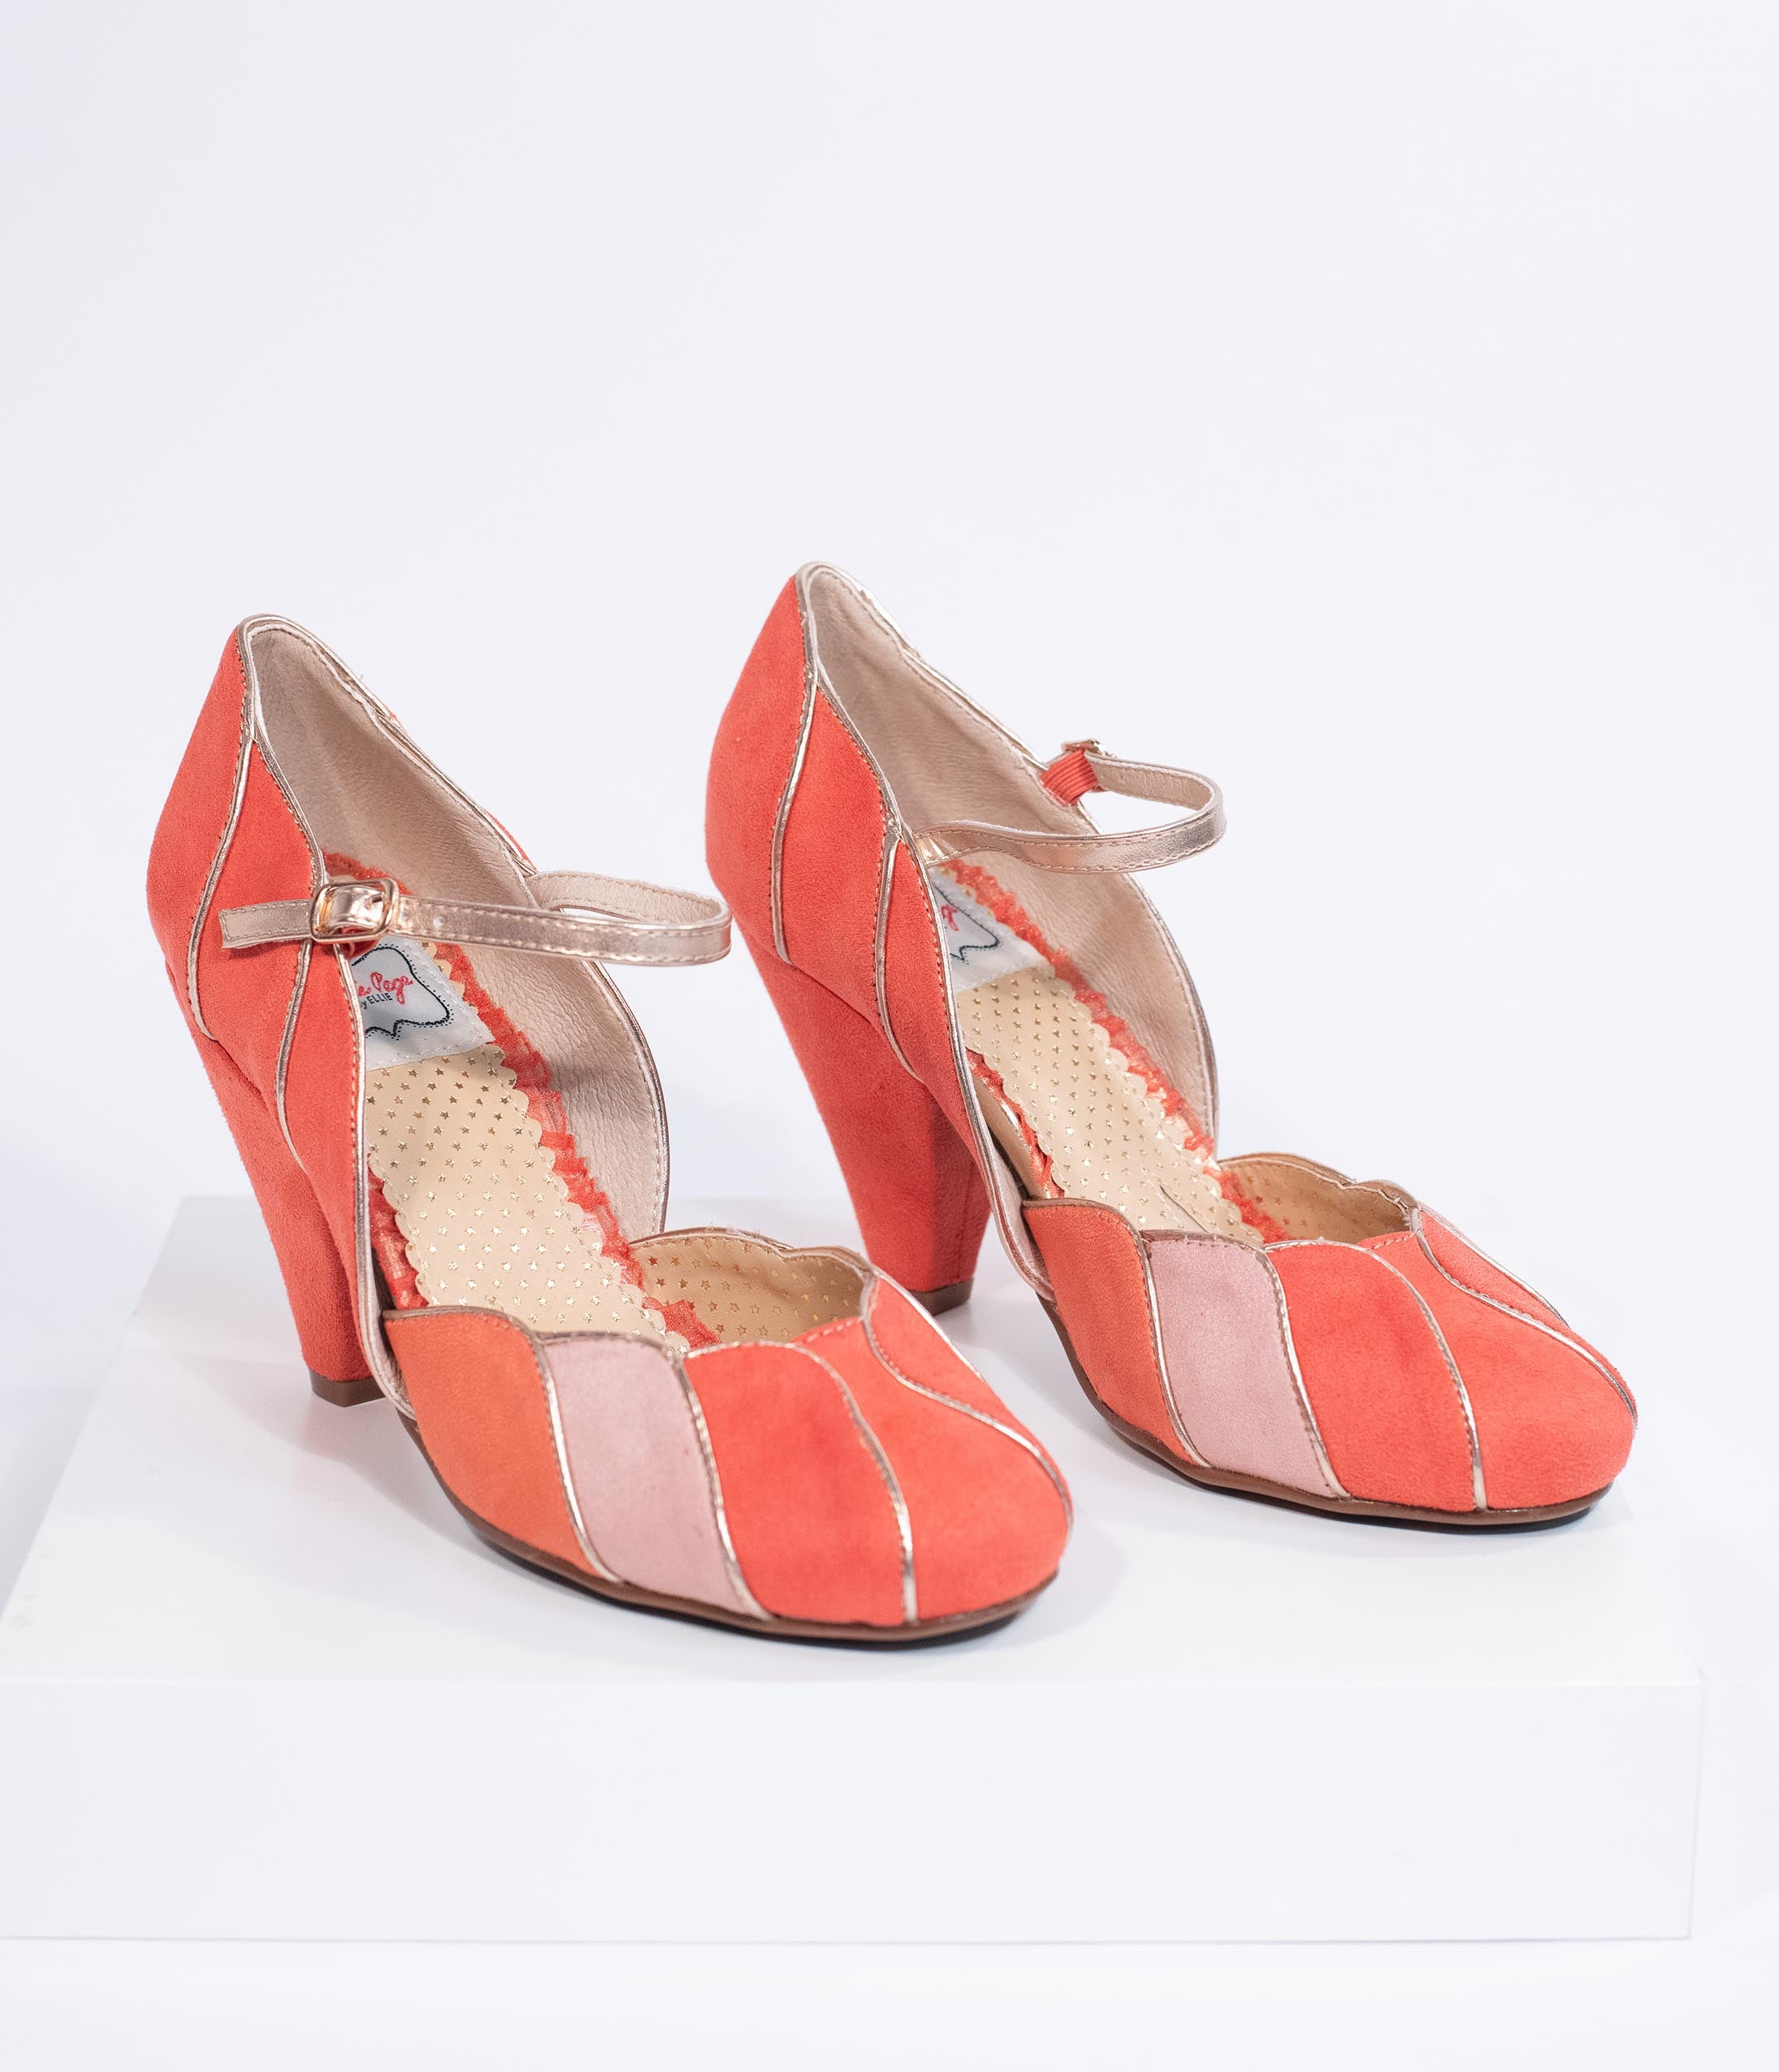 Rockabilly Shoes- Heels, Pumps, Boots, Flats Bettie Page 1950S Peach Pink Suede Kathryn Heels $78.00 AT vintagedancer.com